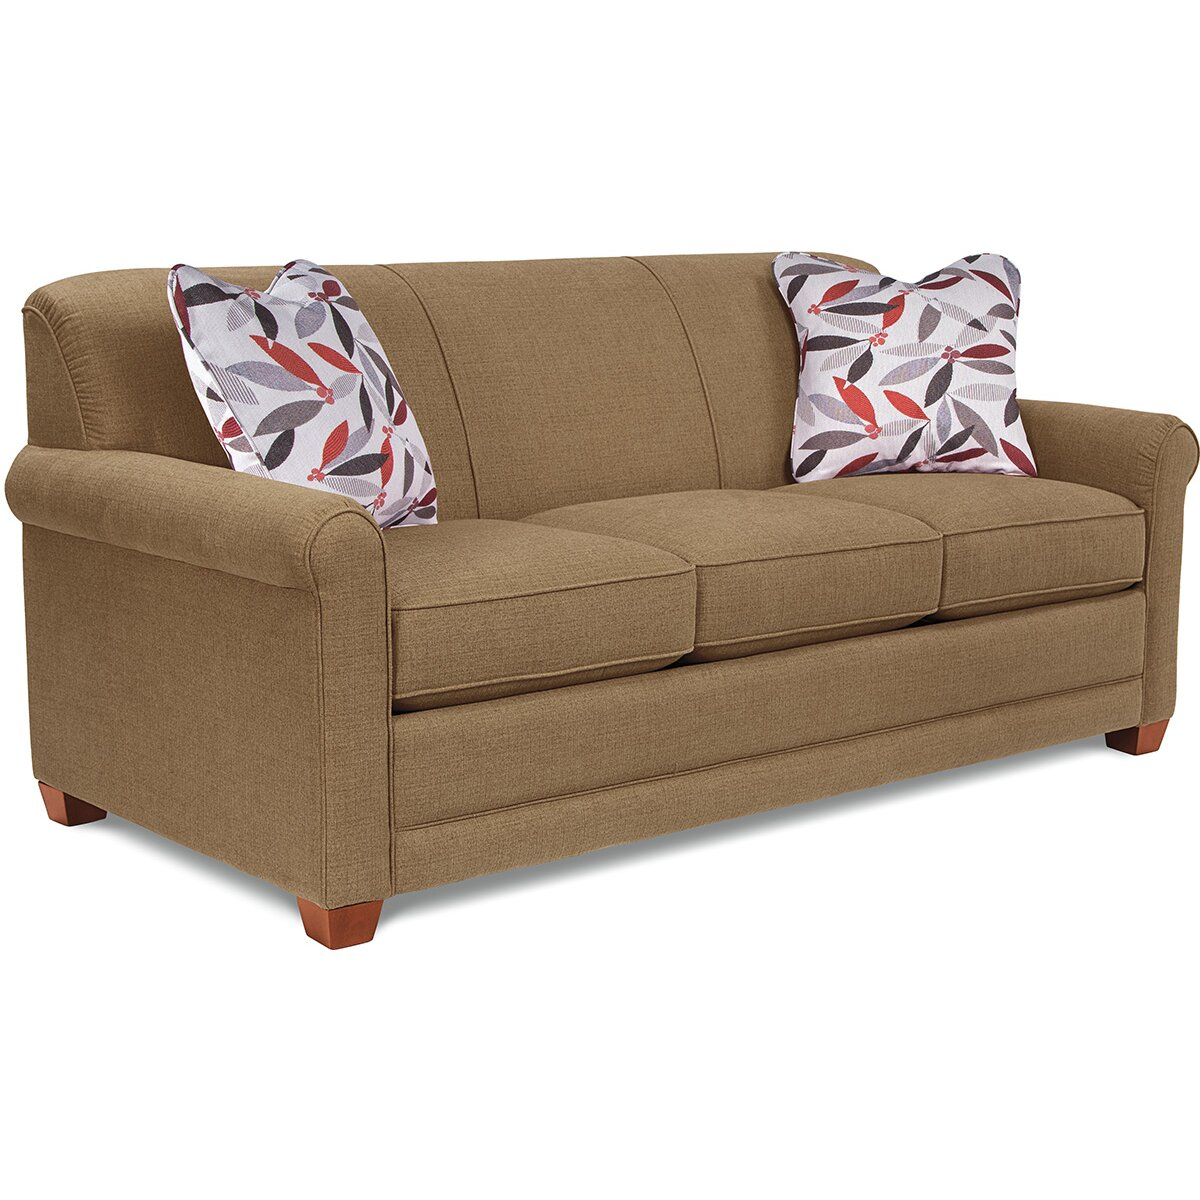 Lay Z Boy Sleeper Sofa Reviews Refil